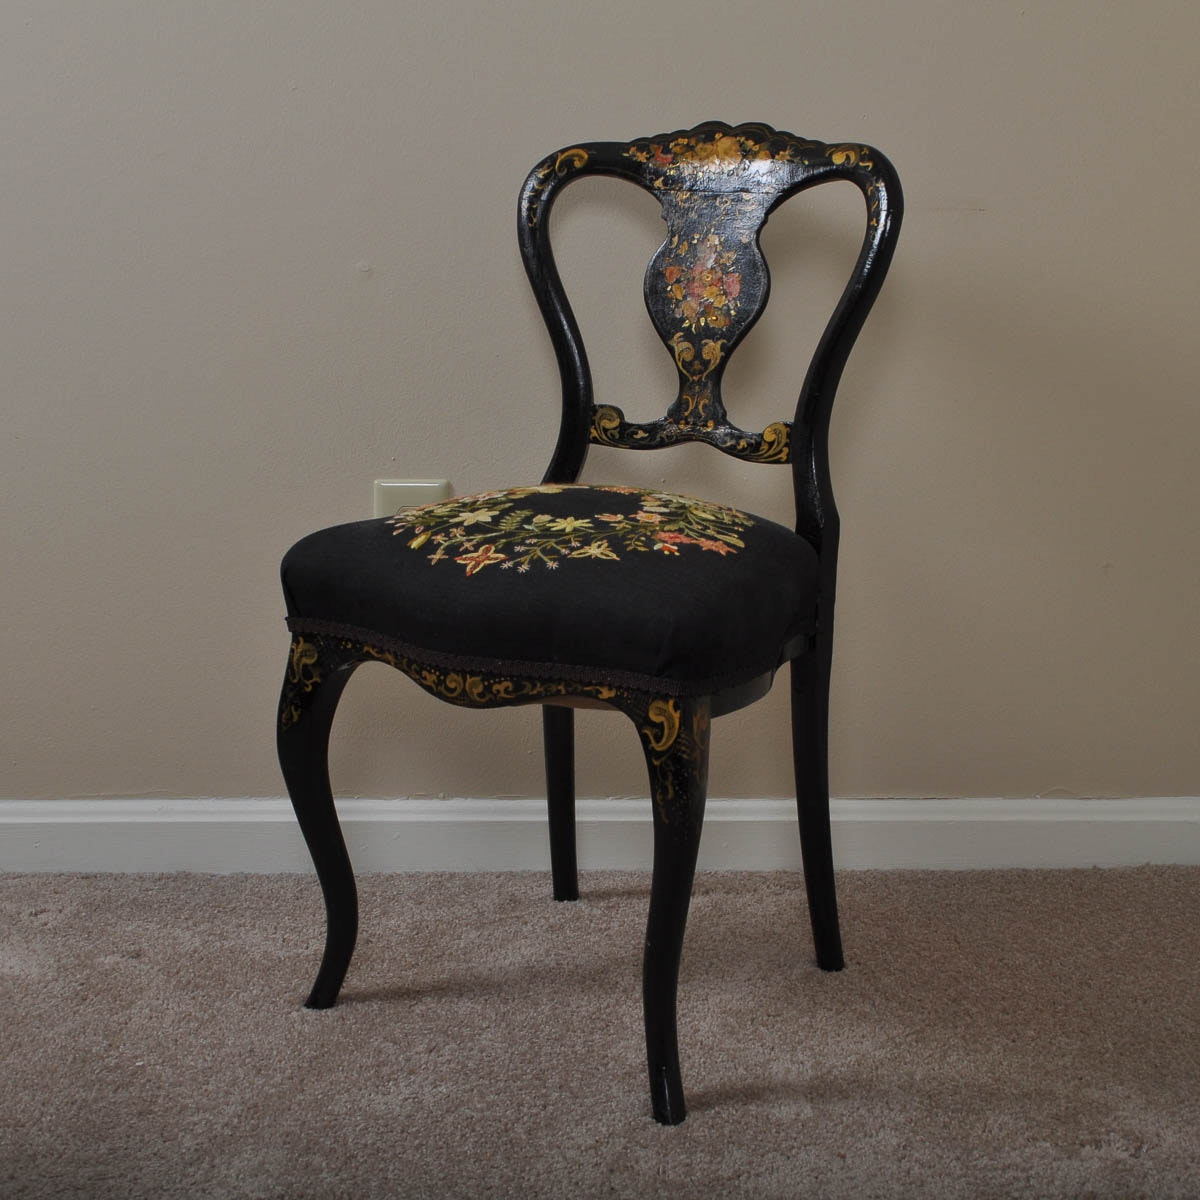 Antique Hand Painted, Hand Embroidered Queen Anne Style Chair